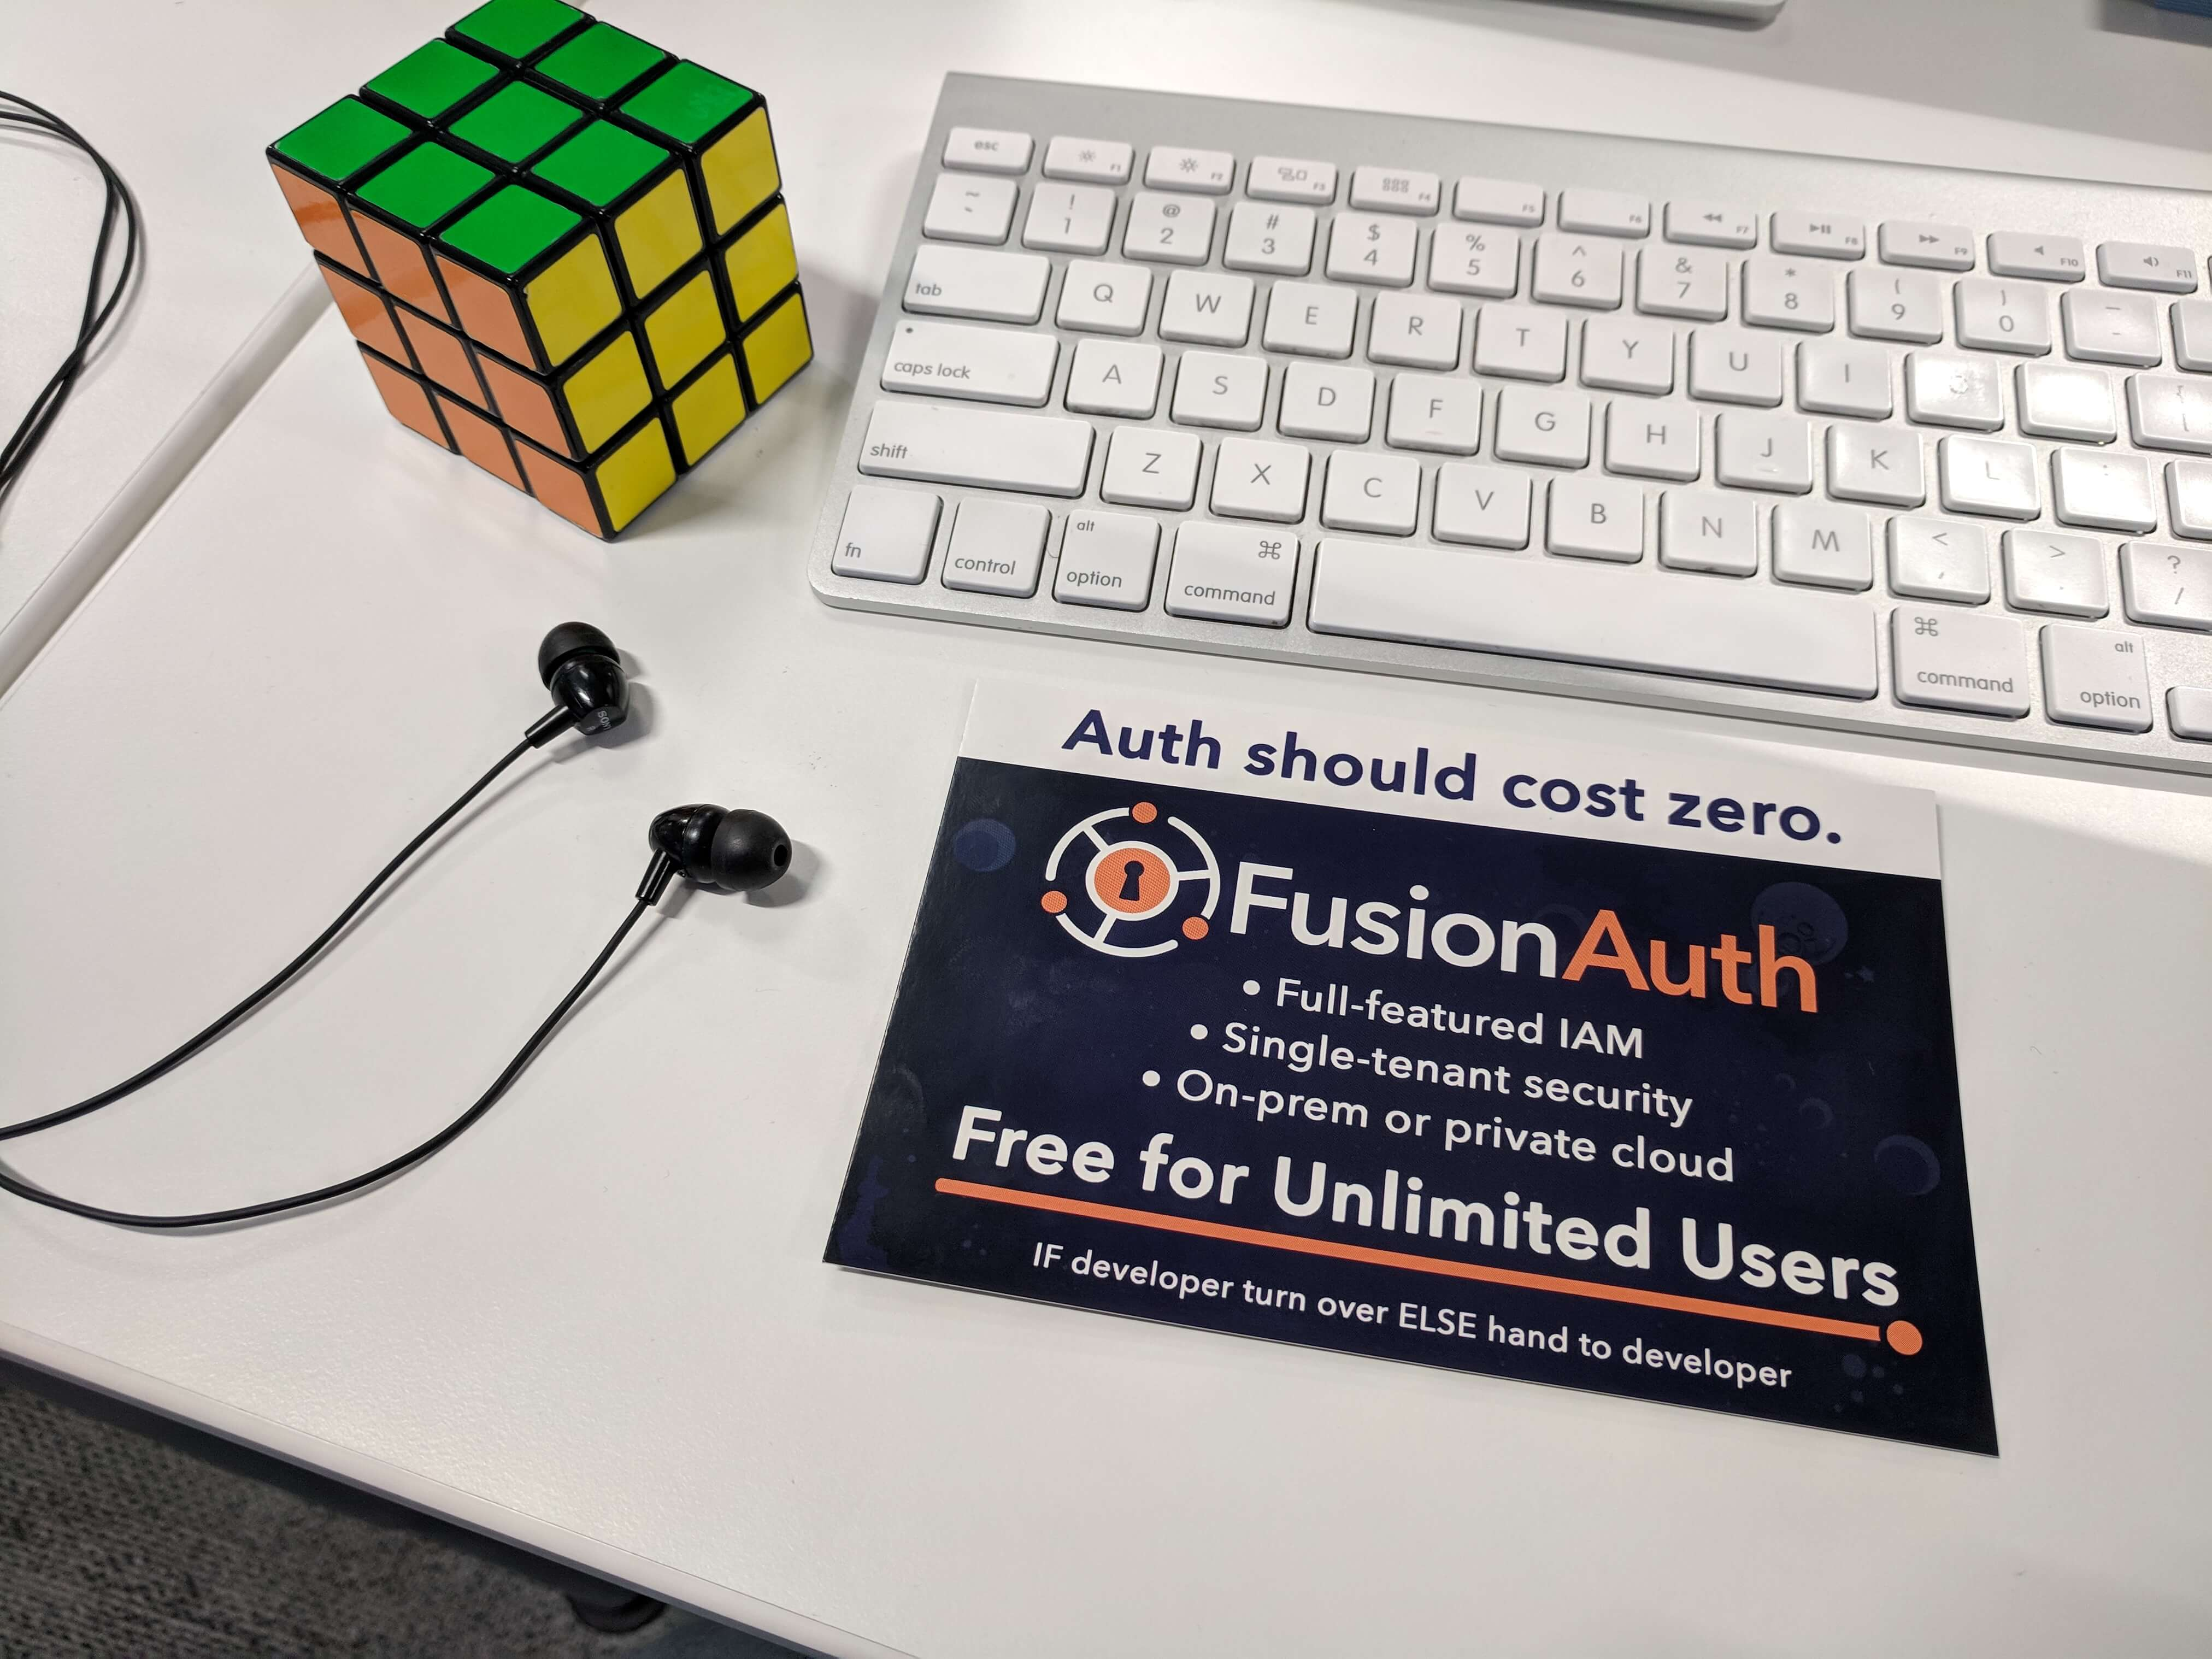 Download and Install FusionAuth Tutorial - Linux